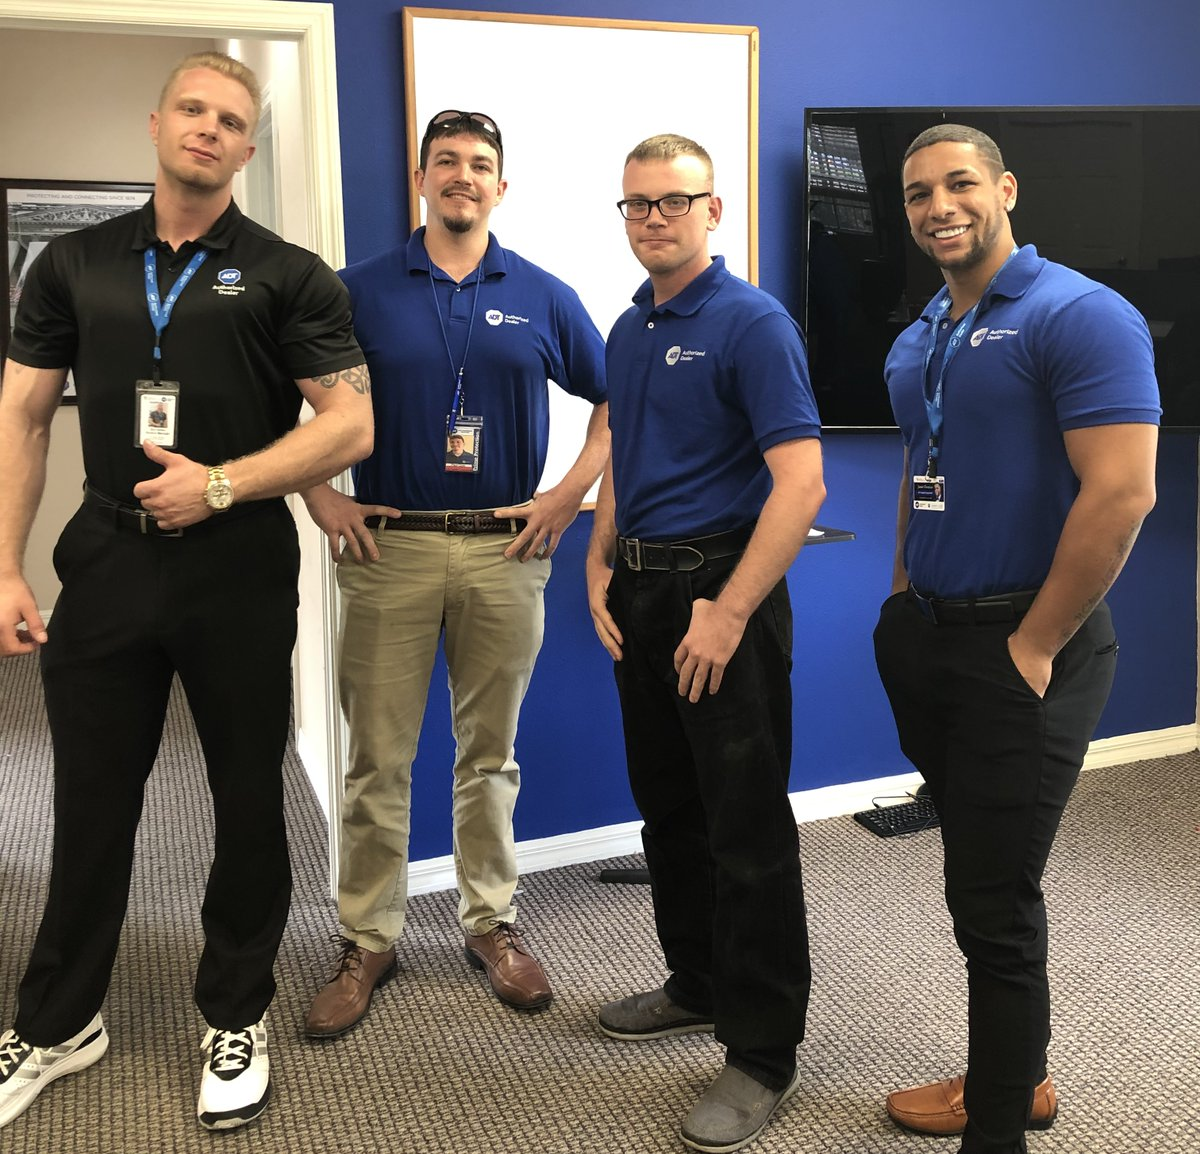 Sales rep appreciation post! Shoutout to Eric, Paul, Martin, and Jamie... keep up the good work! #Salesforce #appreciationpost #homesecurity https://t.co/rHKAkRTrRF